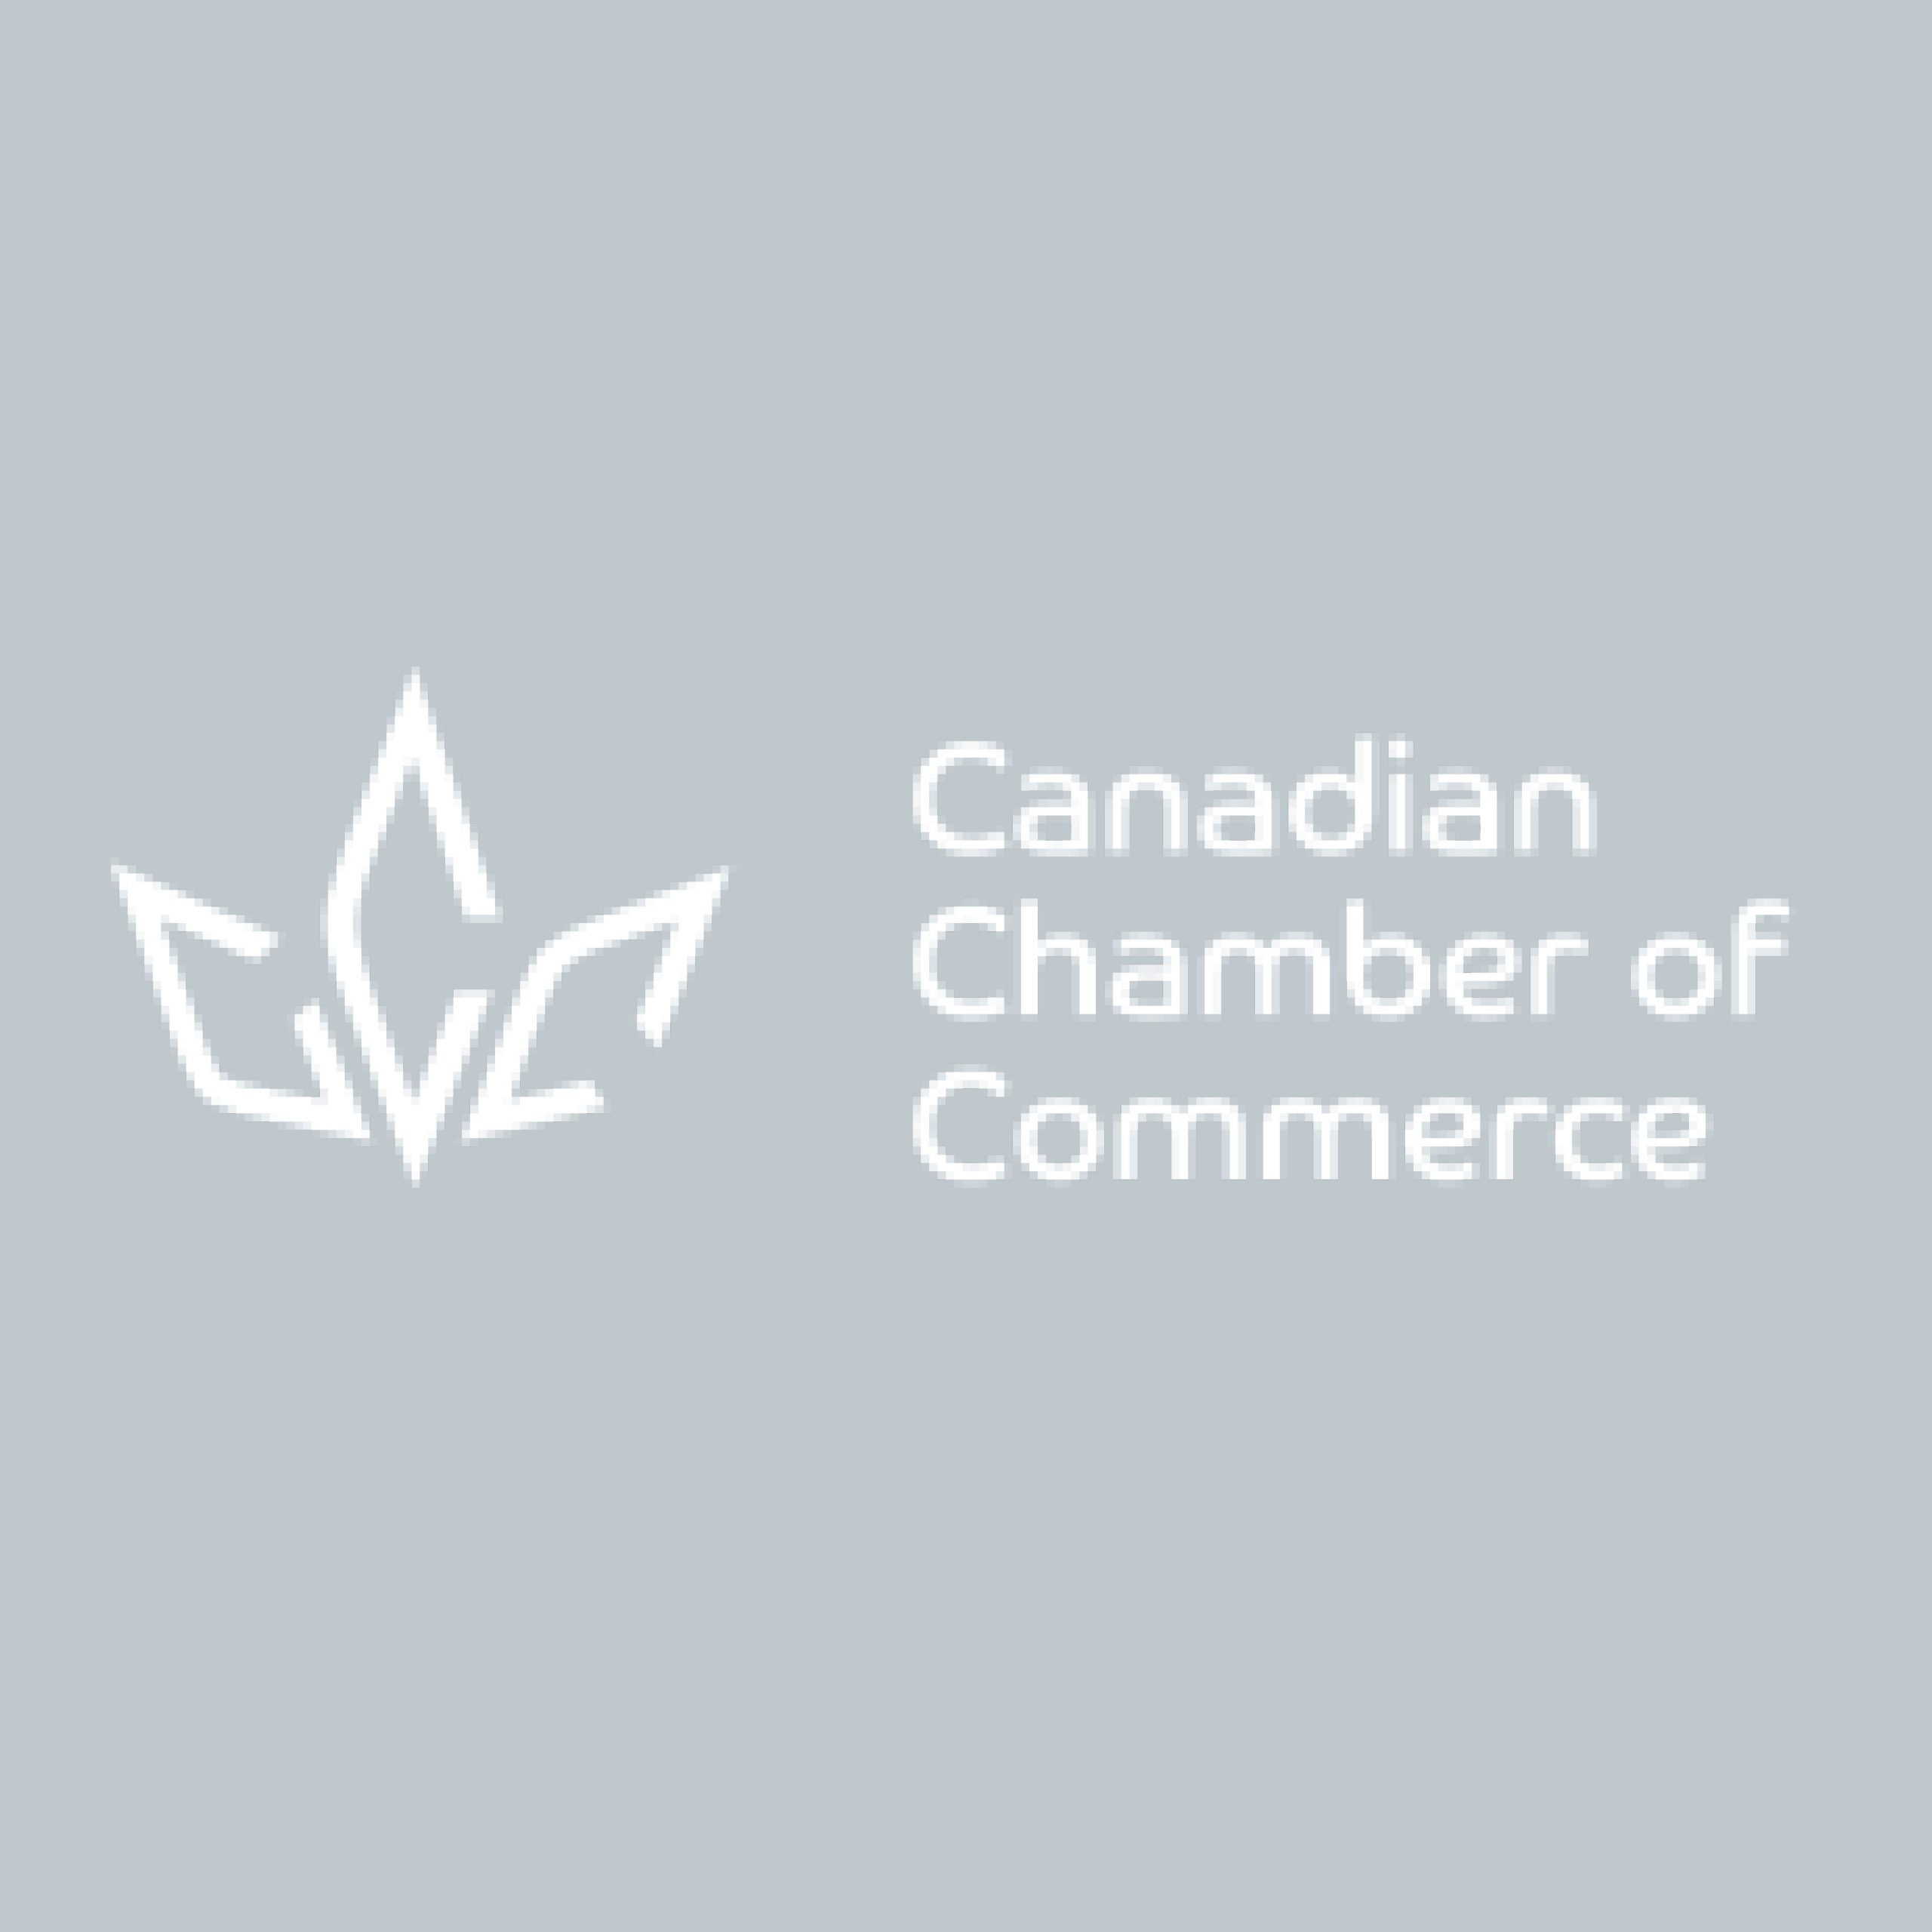 Candaian Chamber of Commerce logo